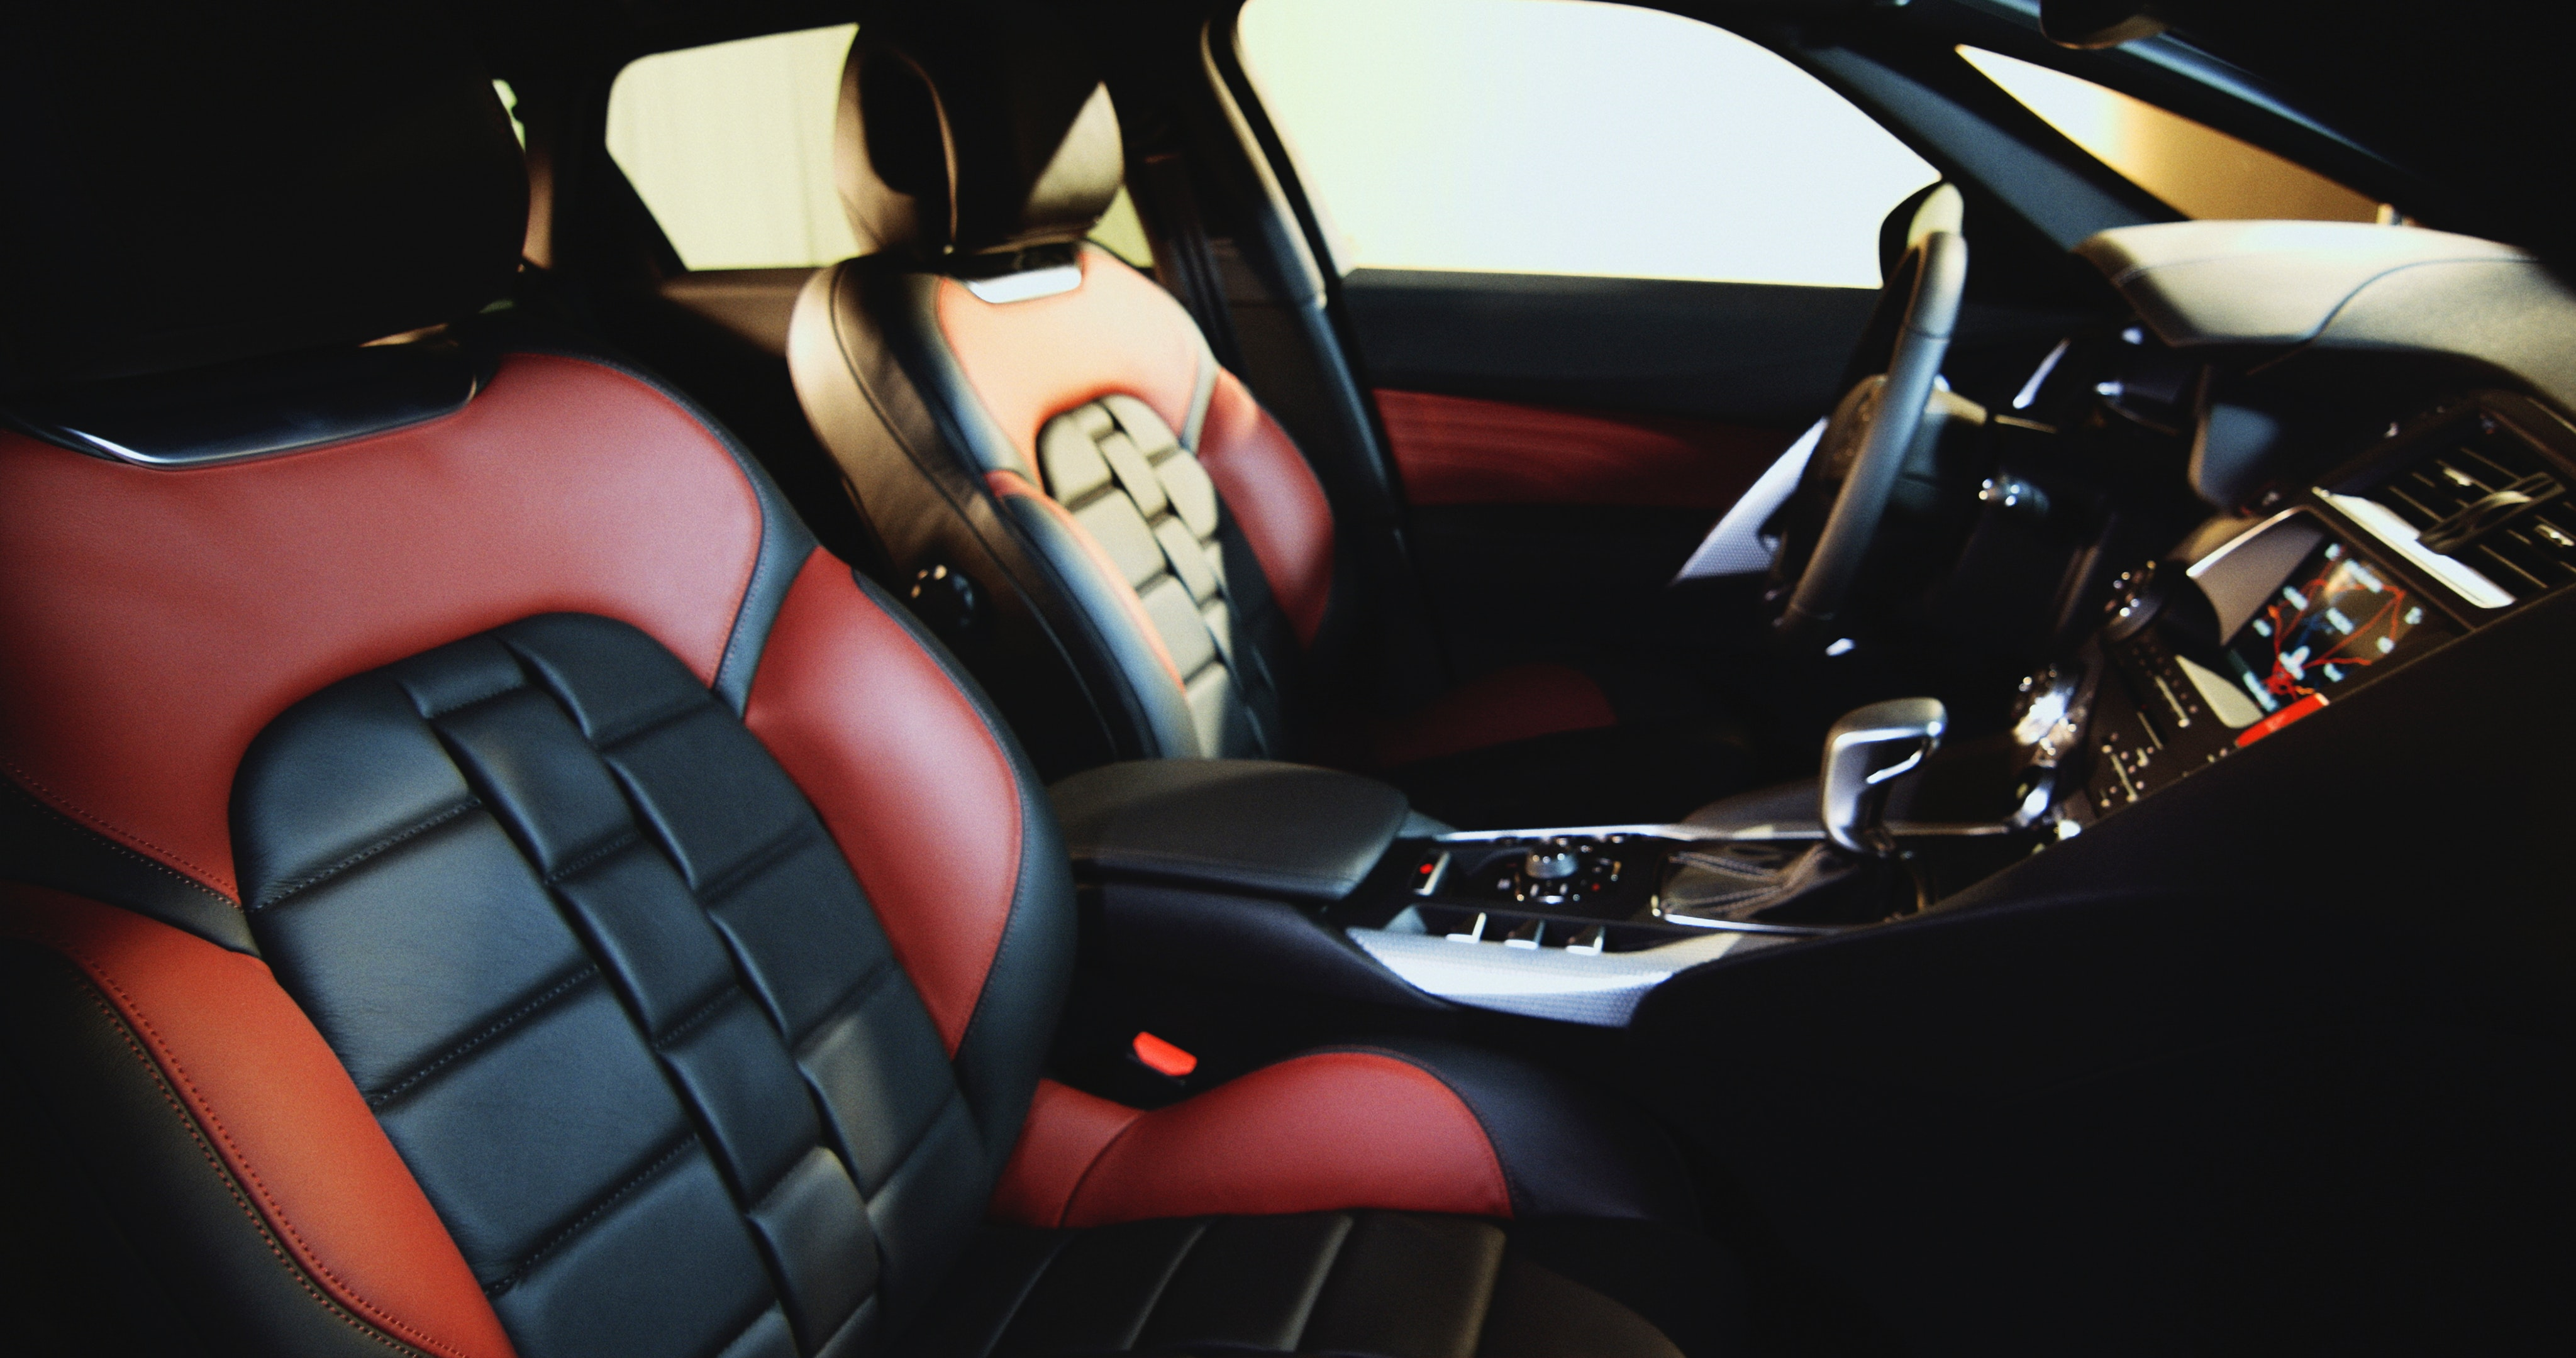 Will Wet Okole Car Seat Covers Work With Heated Seats?